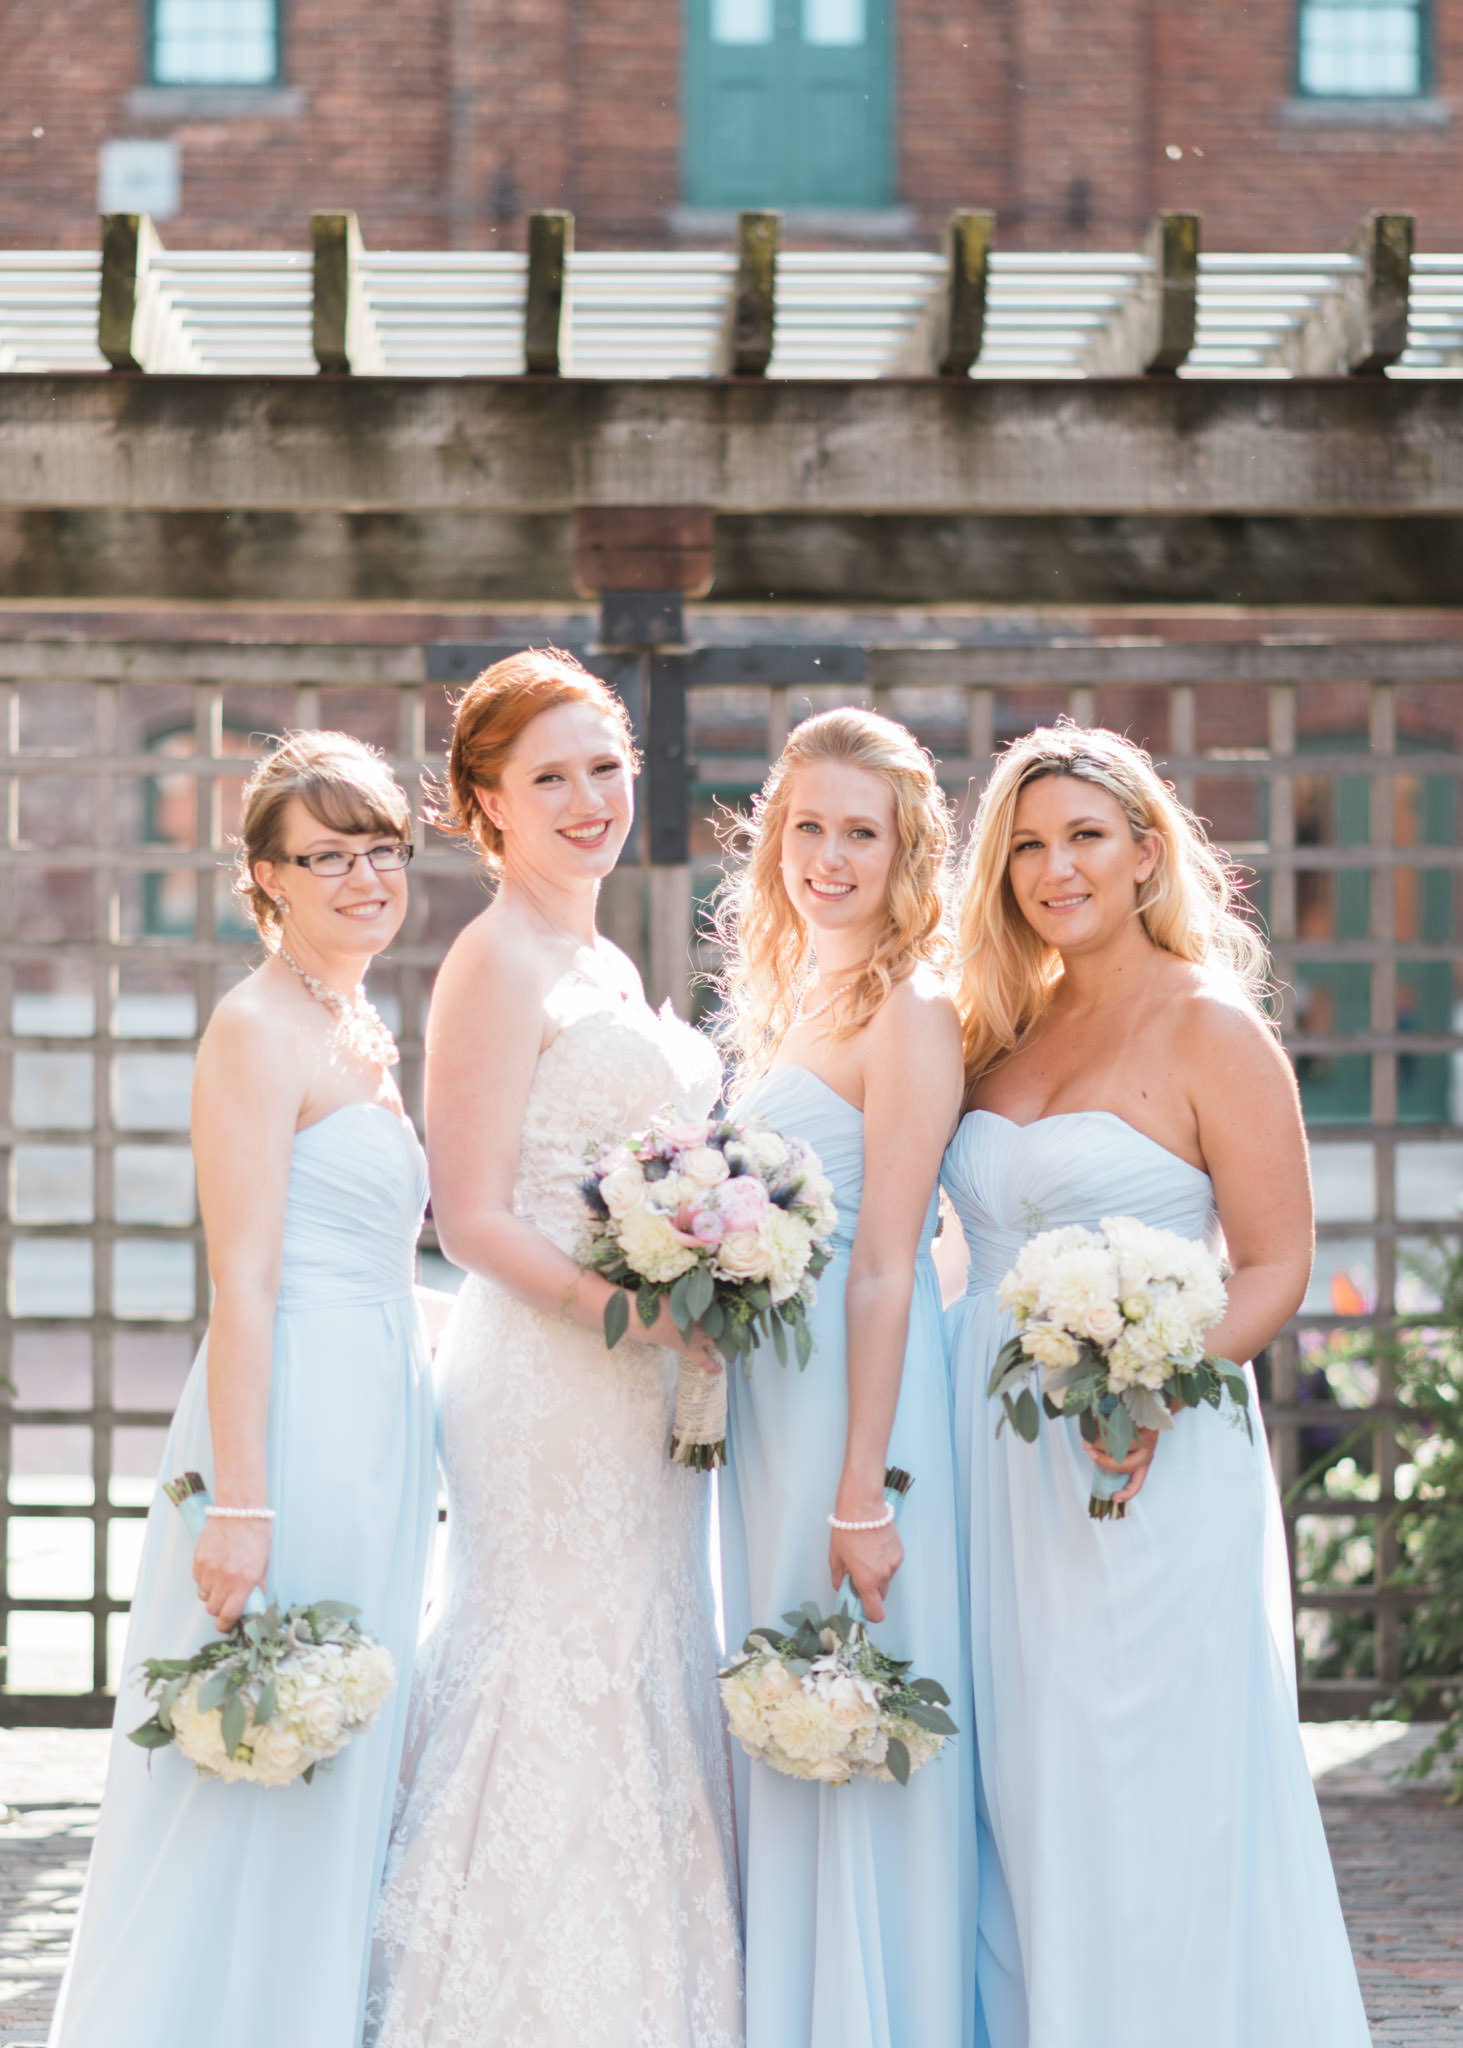 Bride and bridesmaids pose at Archeo in Distillery District wedding